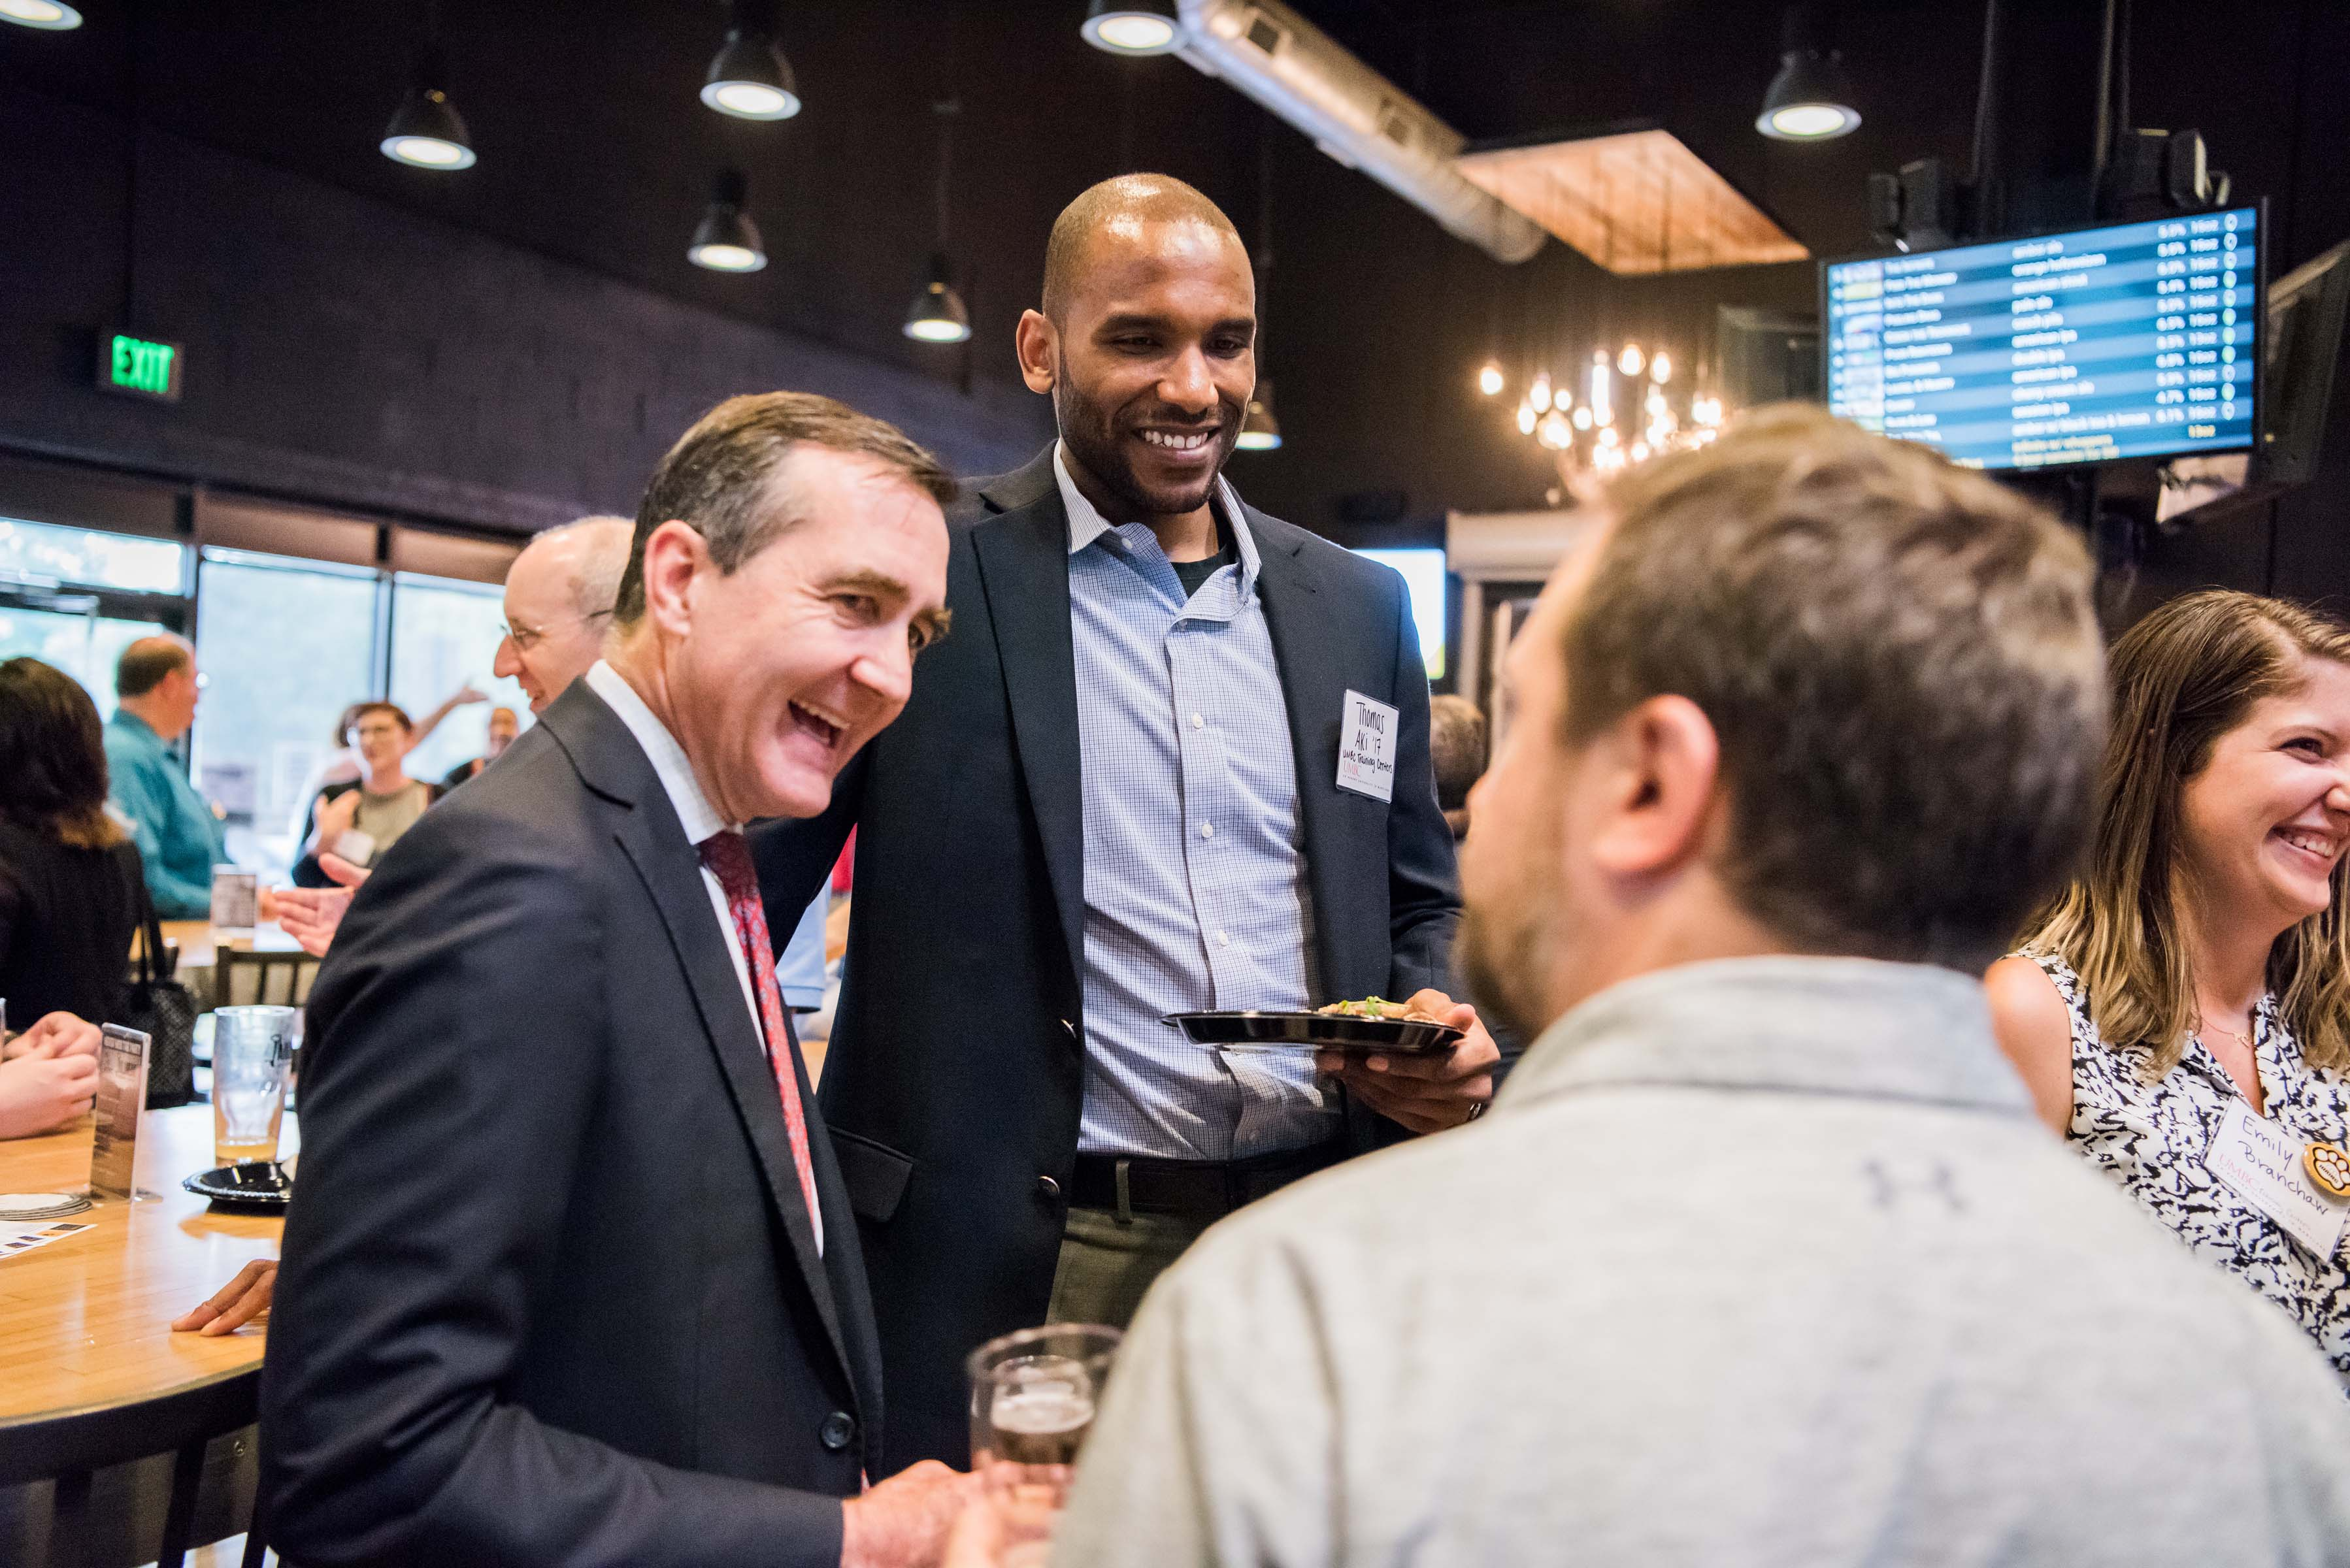 Greg simmons and others laughing at ITE happy hour